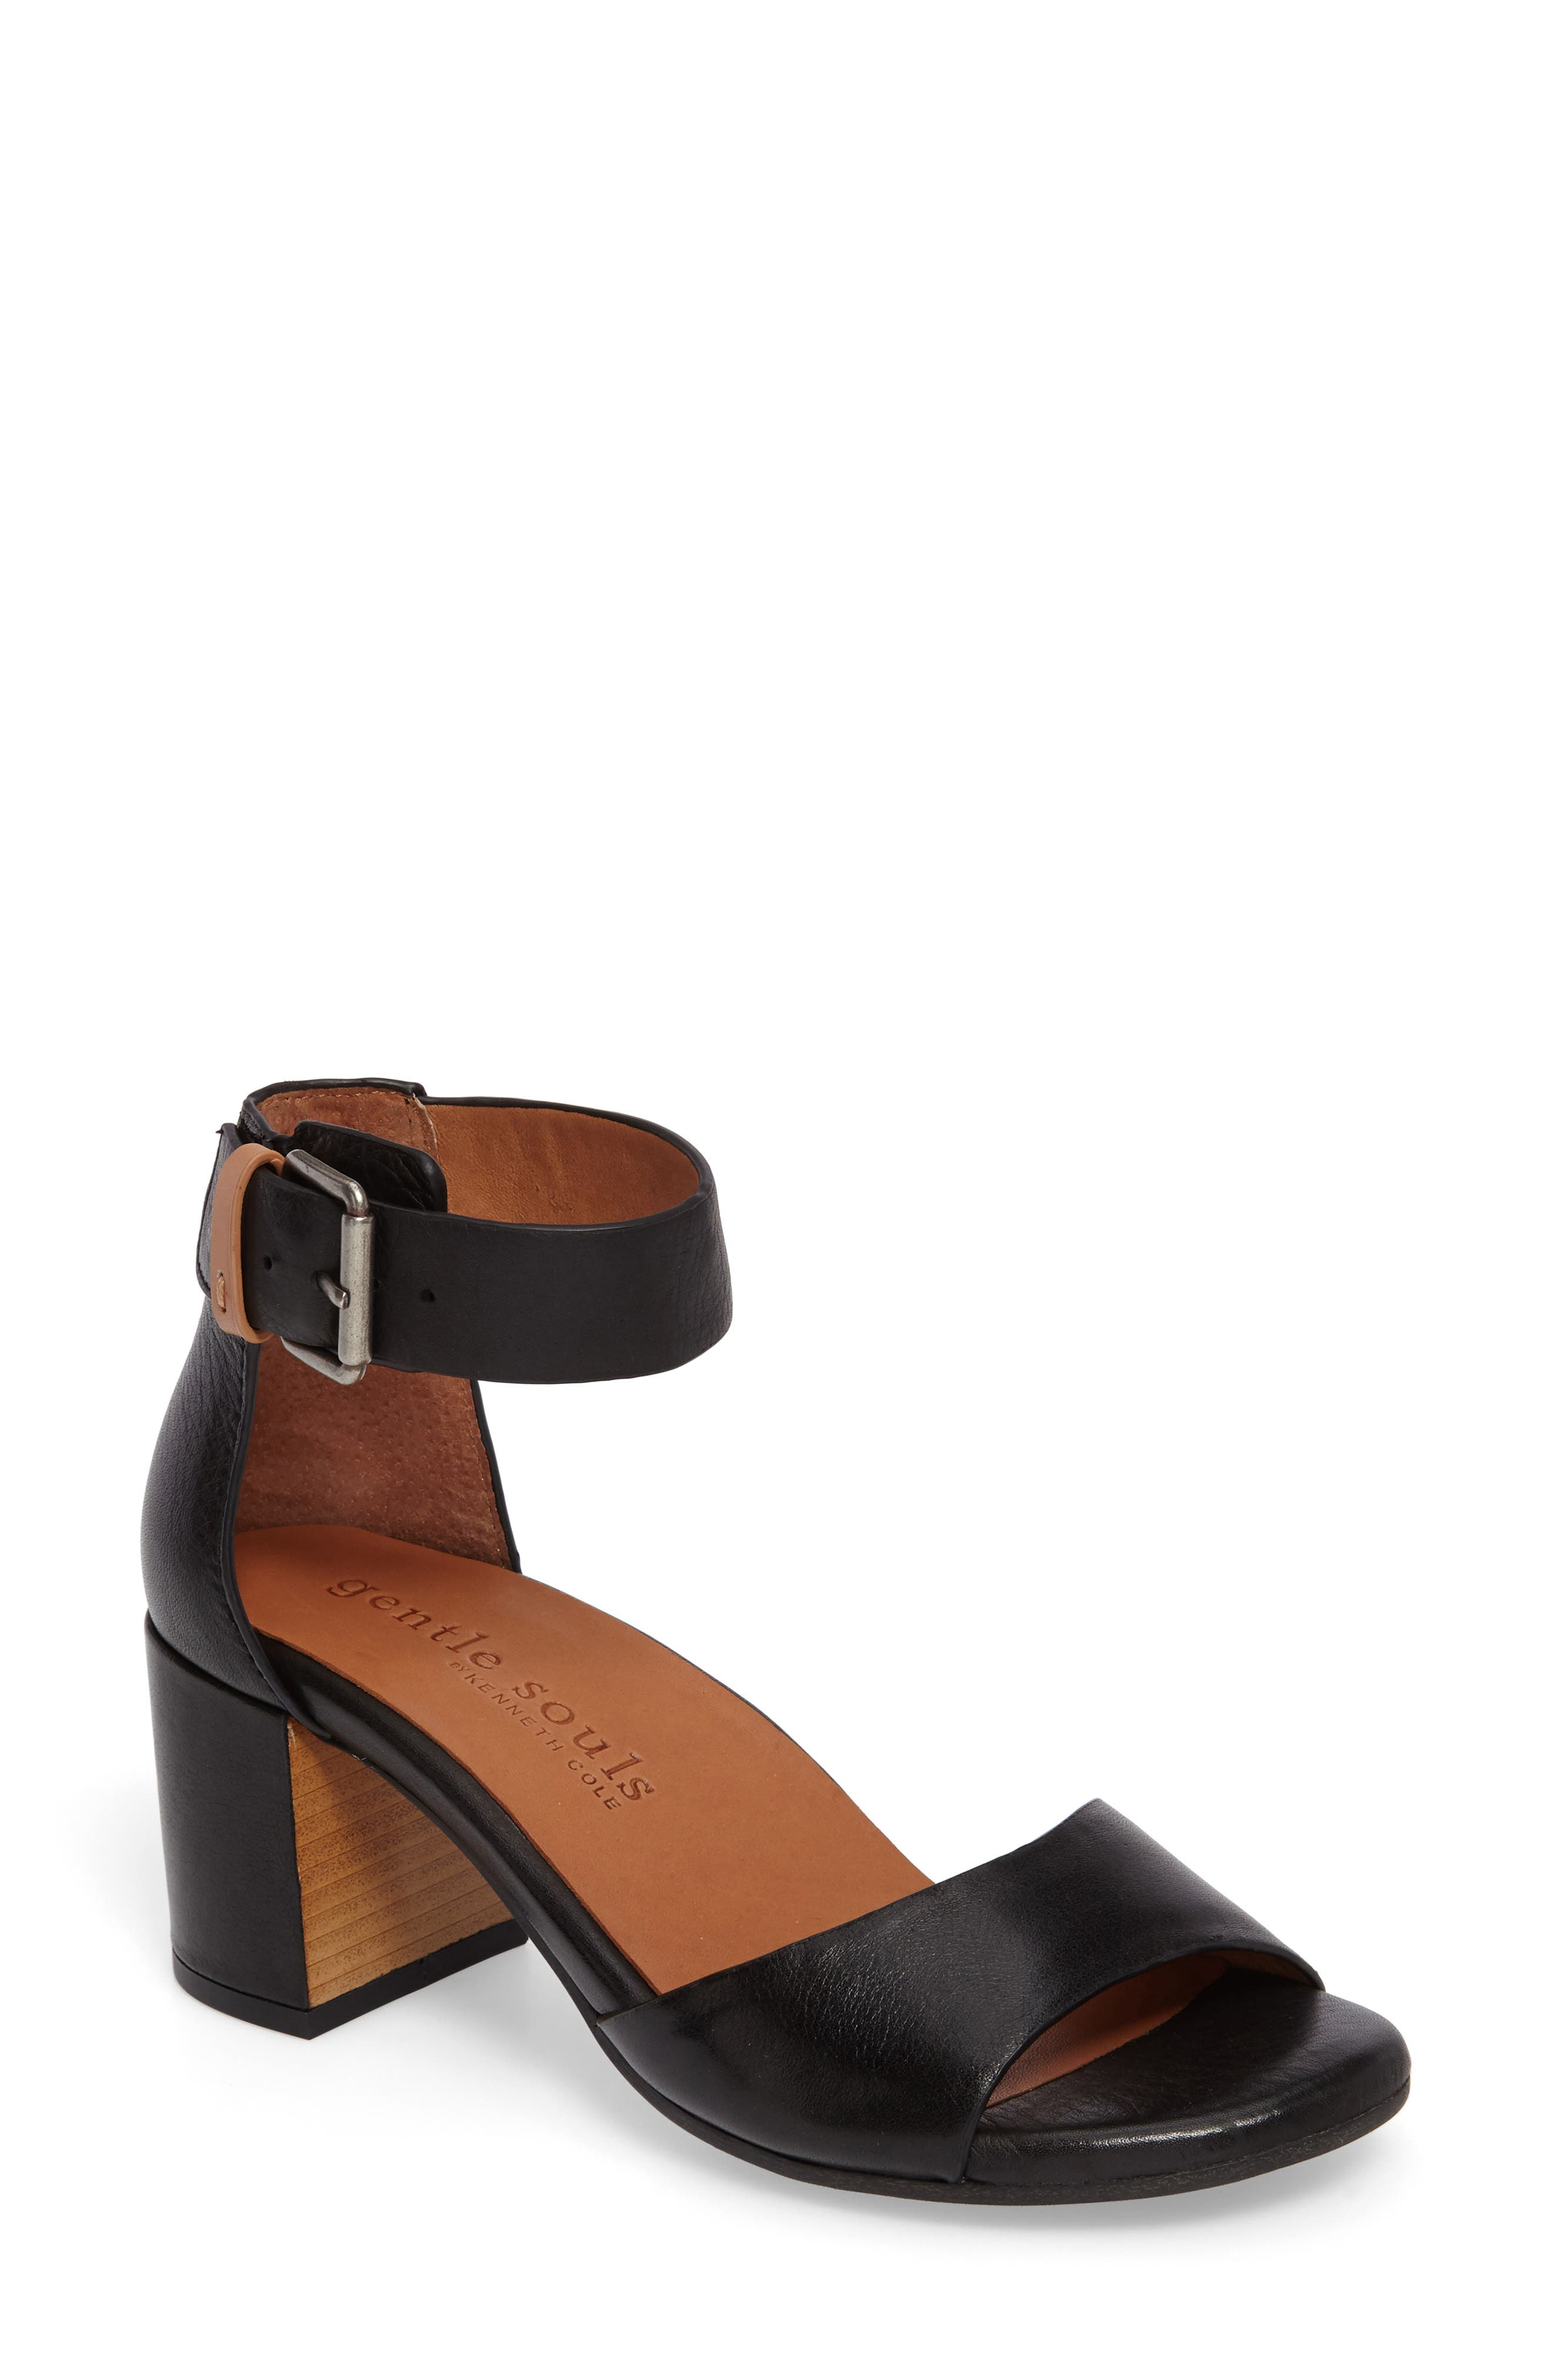 GENTLE SOULS BY KENNETH COLE, Christa Block Heel Sandal, Main thumbnail 1, color, BLACK LEATHER